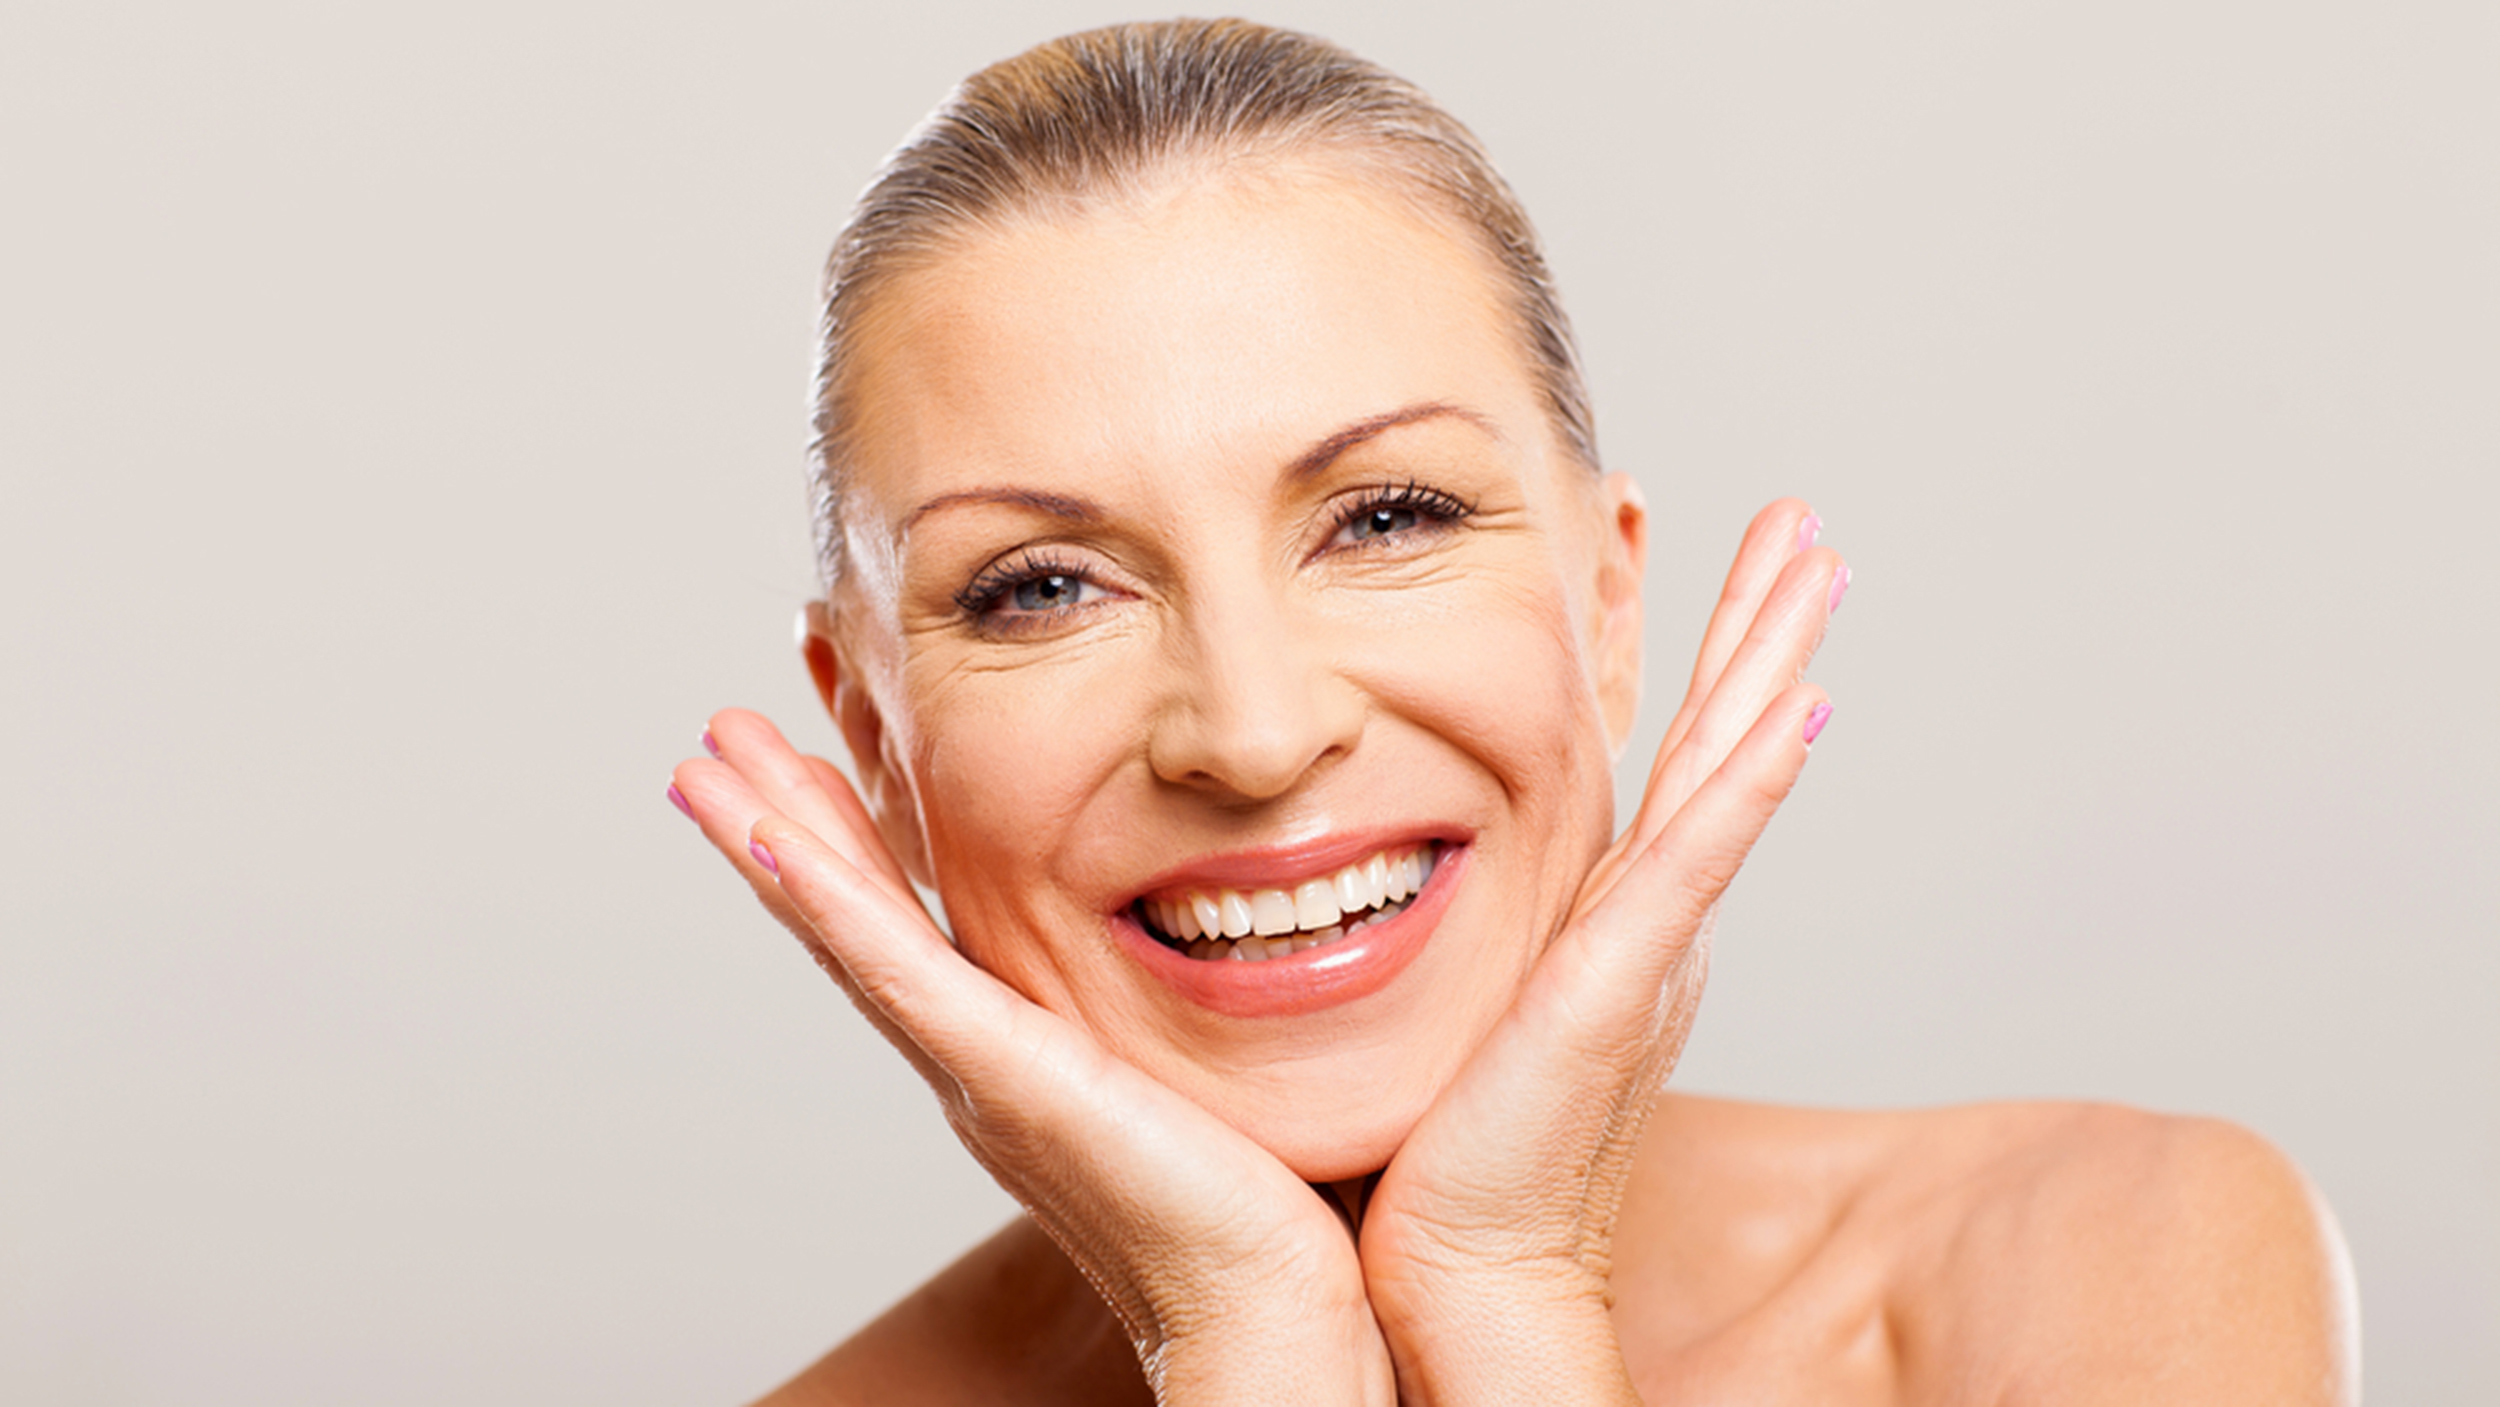 The Biggest Skin-care Dilemmas Women Face In Their 50s U2014 And How To Fix Them - TODAY.com